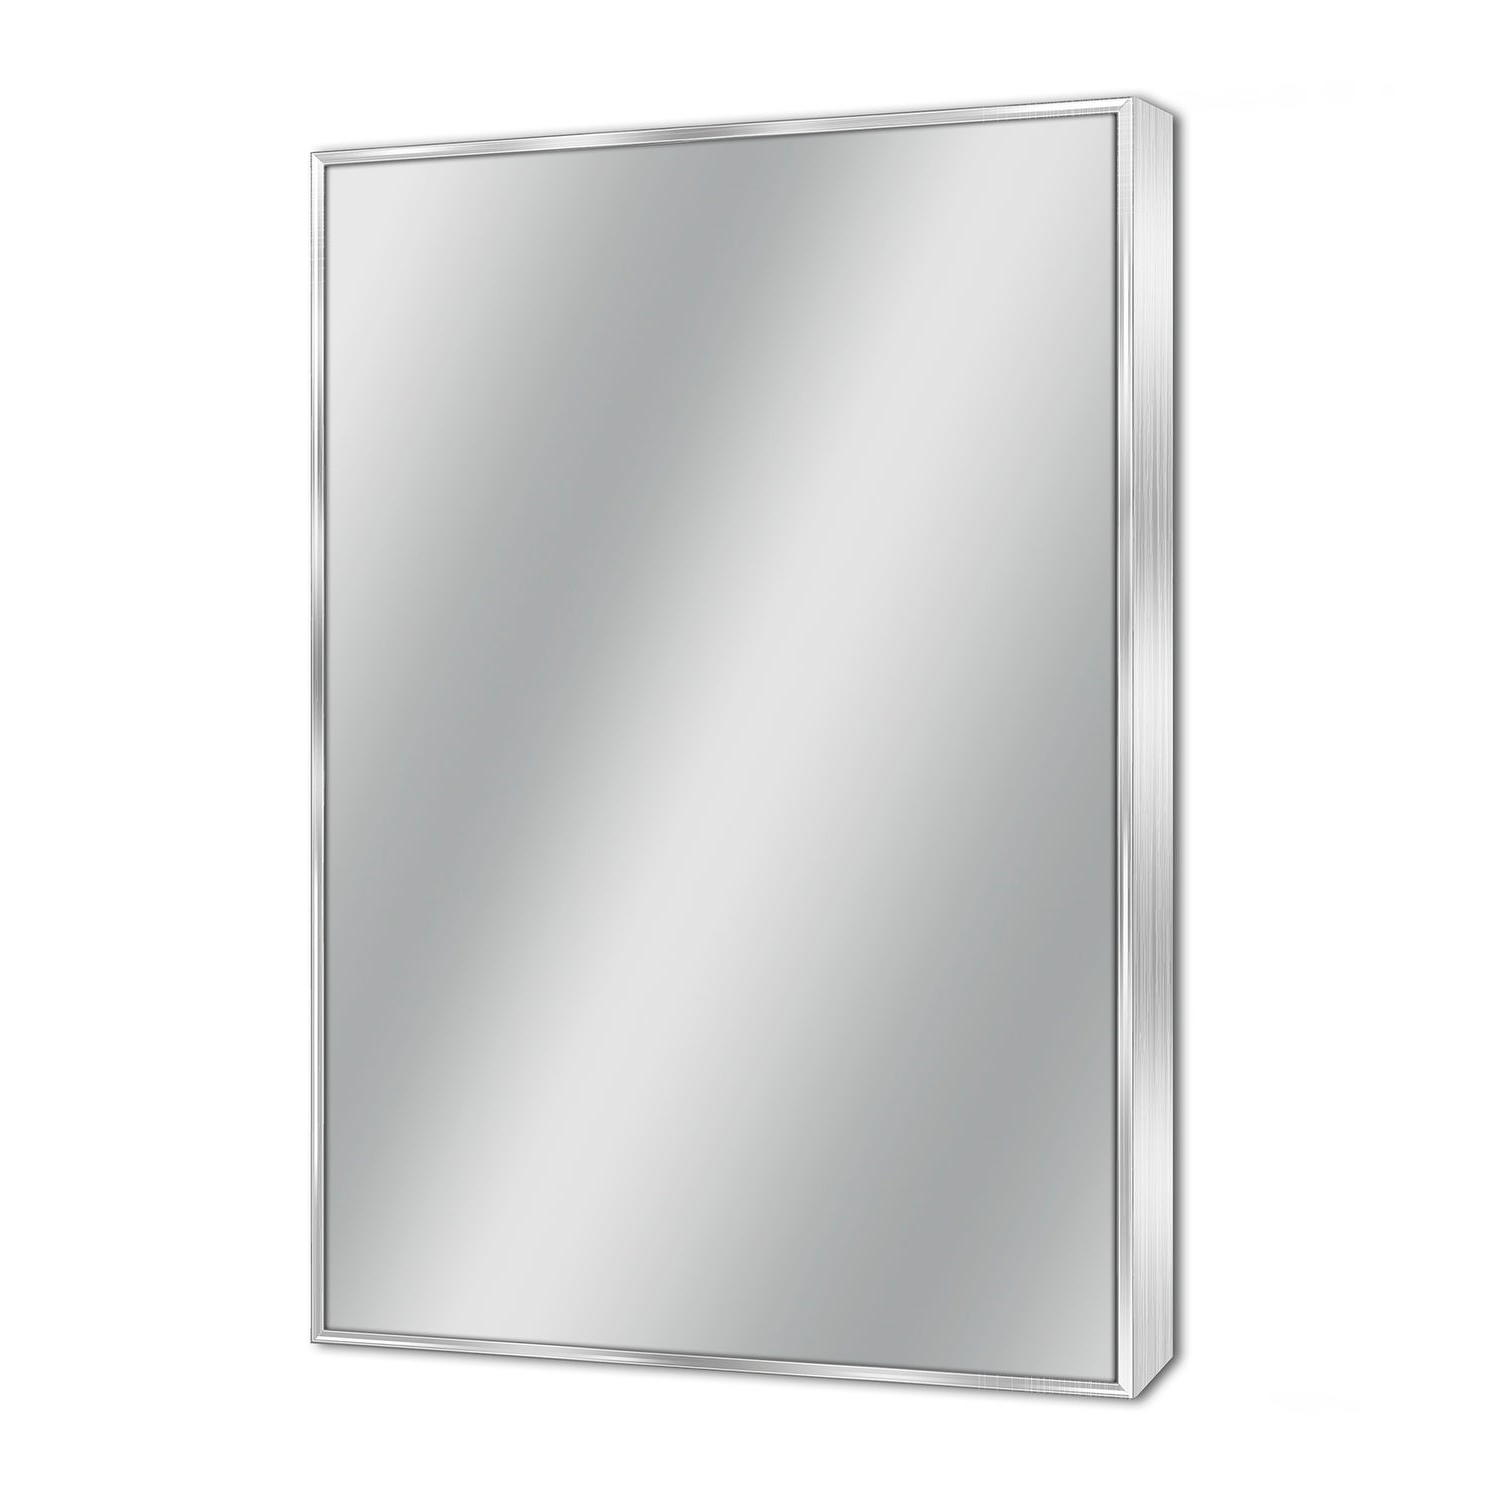 Newest Details About Headwest Spectrum Brush Nickel Wall Mirror – Brushed Nickel Inside Brushed Nickel Wall Mirrors For Bathroom (Gallery 13 of 20)